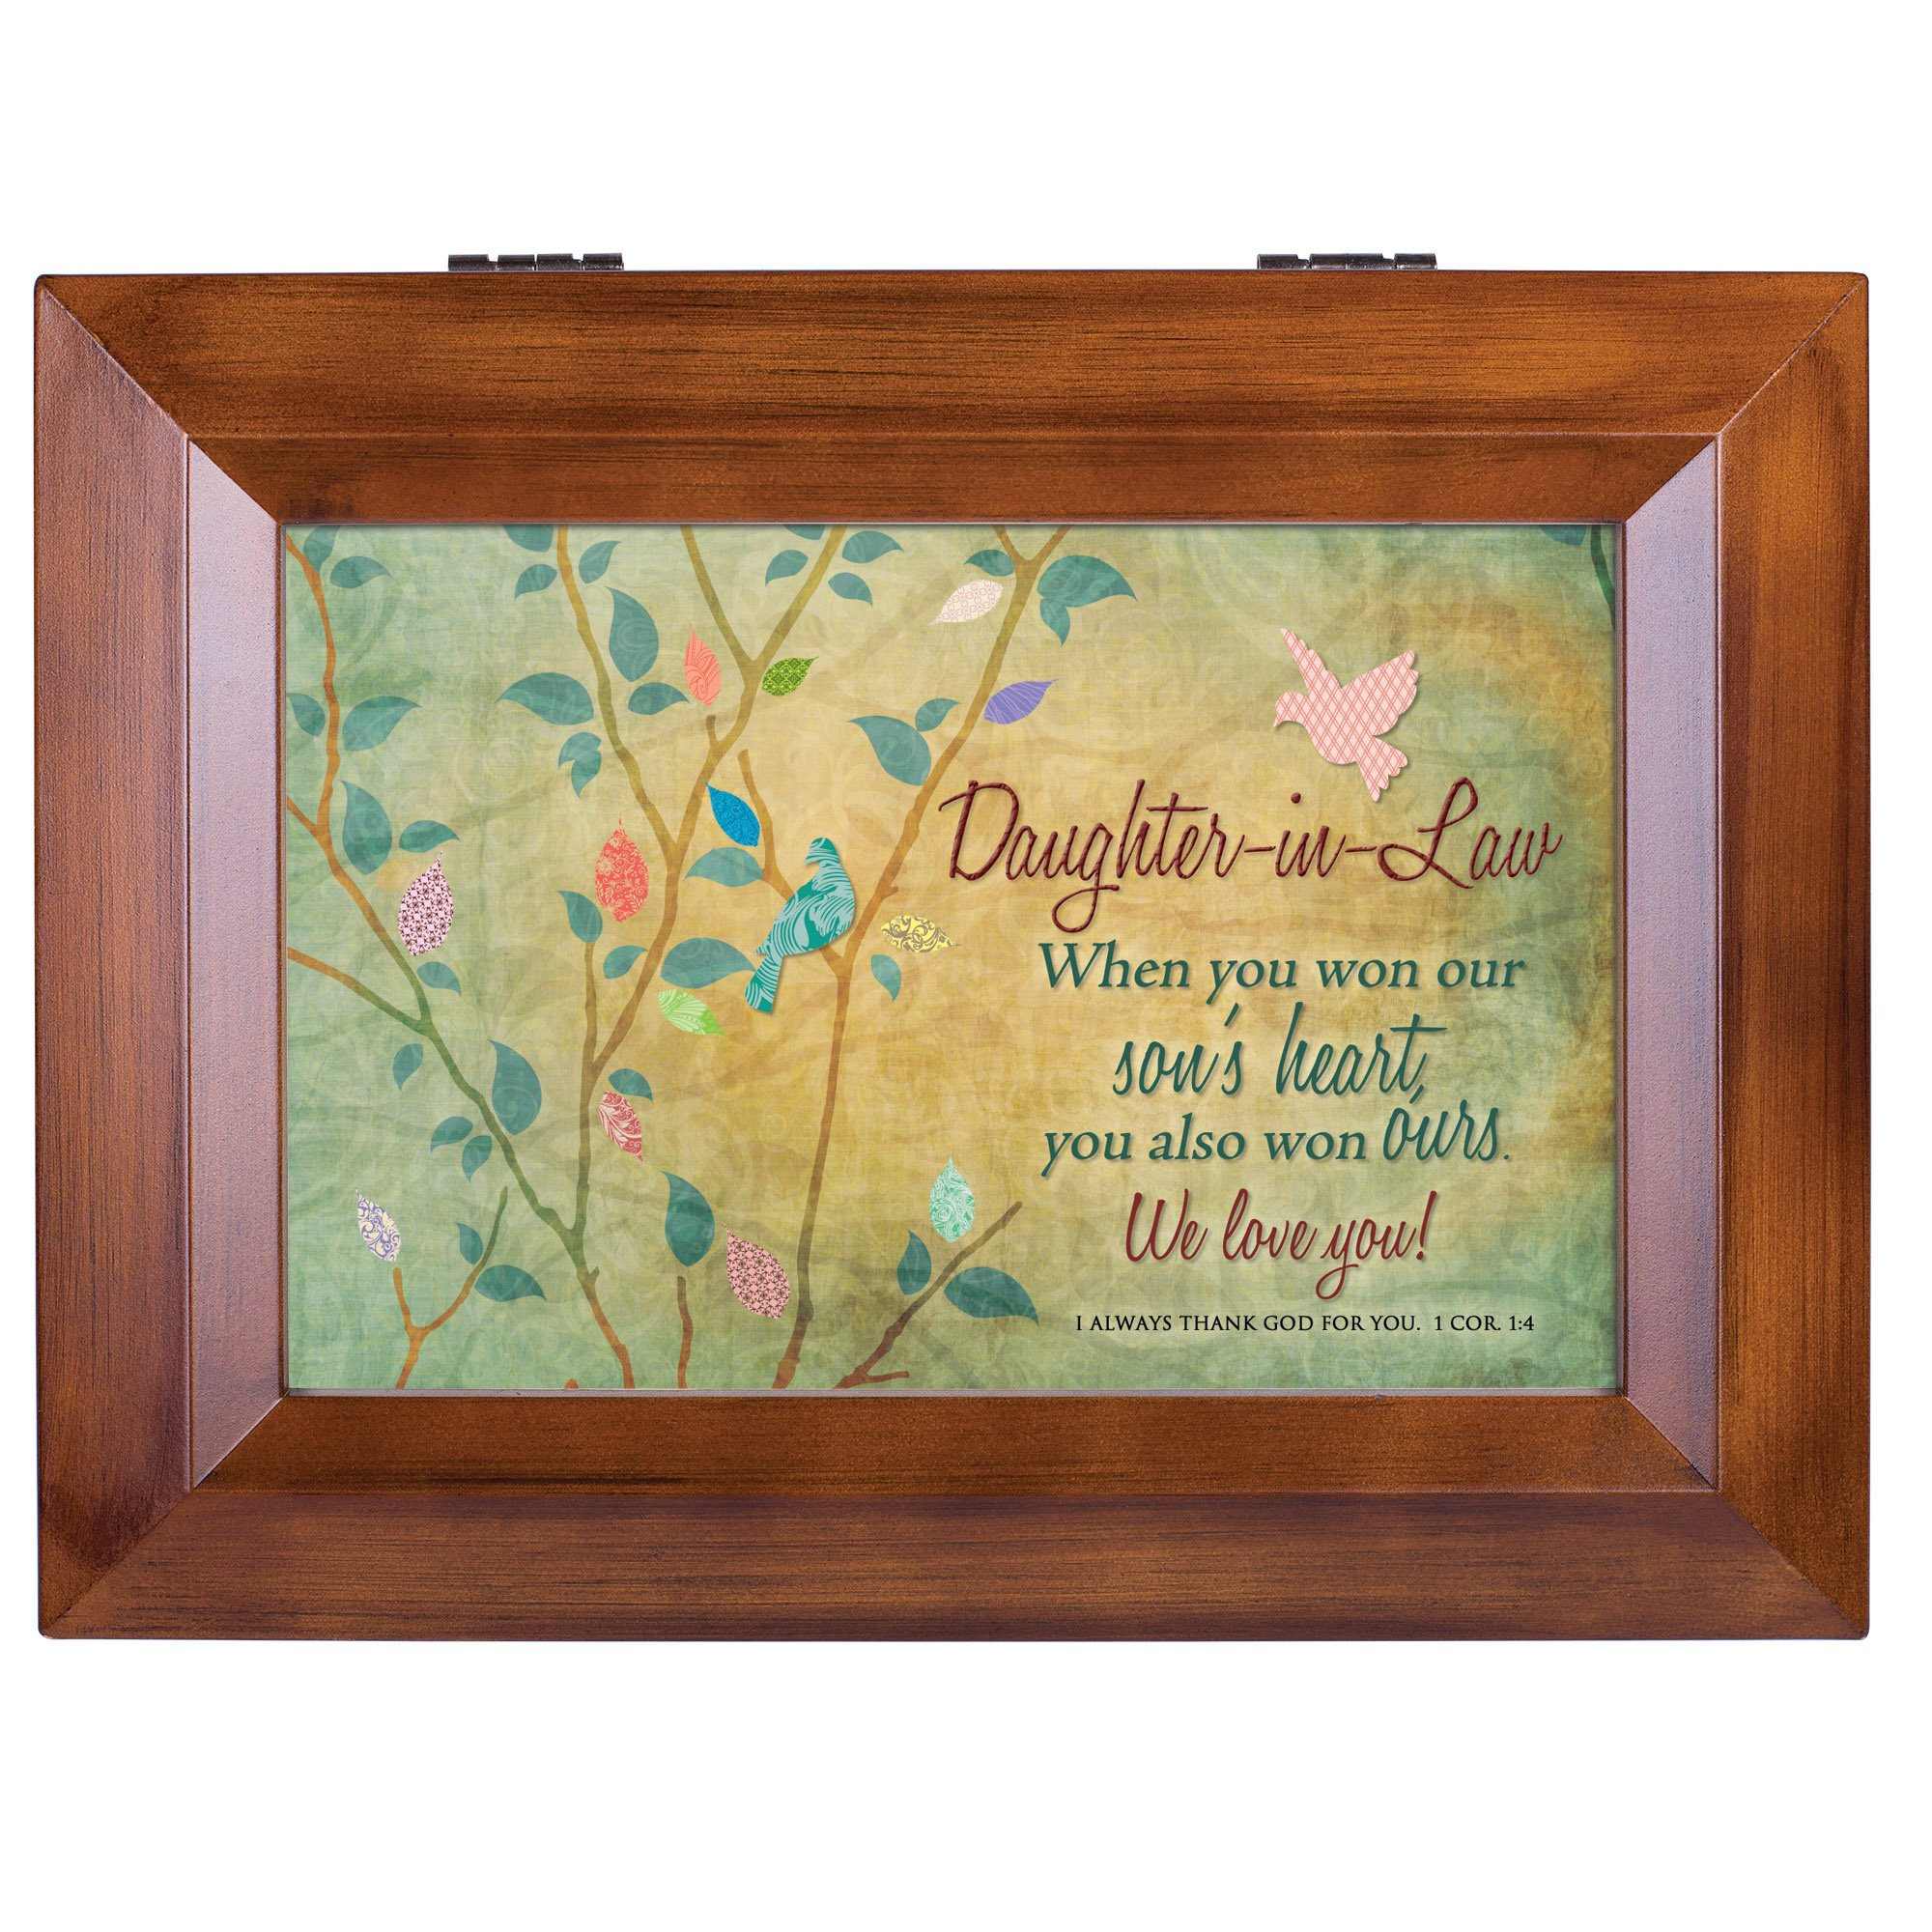 Cottage Garden Daughter-in-Law We Love You Wood Finish Jewelry Music Box - Plays Tune You Are My Sunshine by Cottage Garden (Image #2)